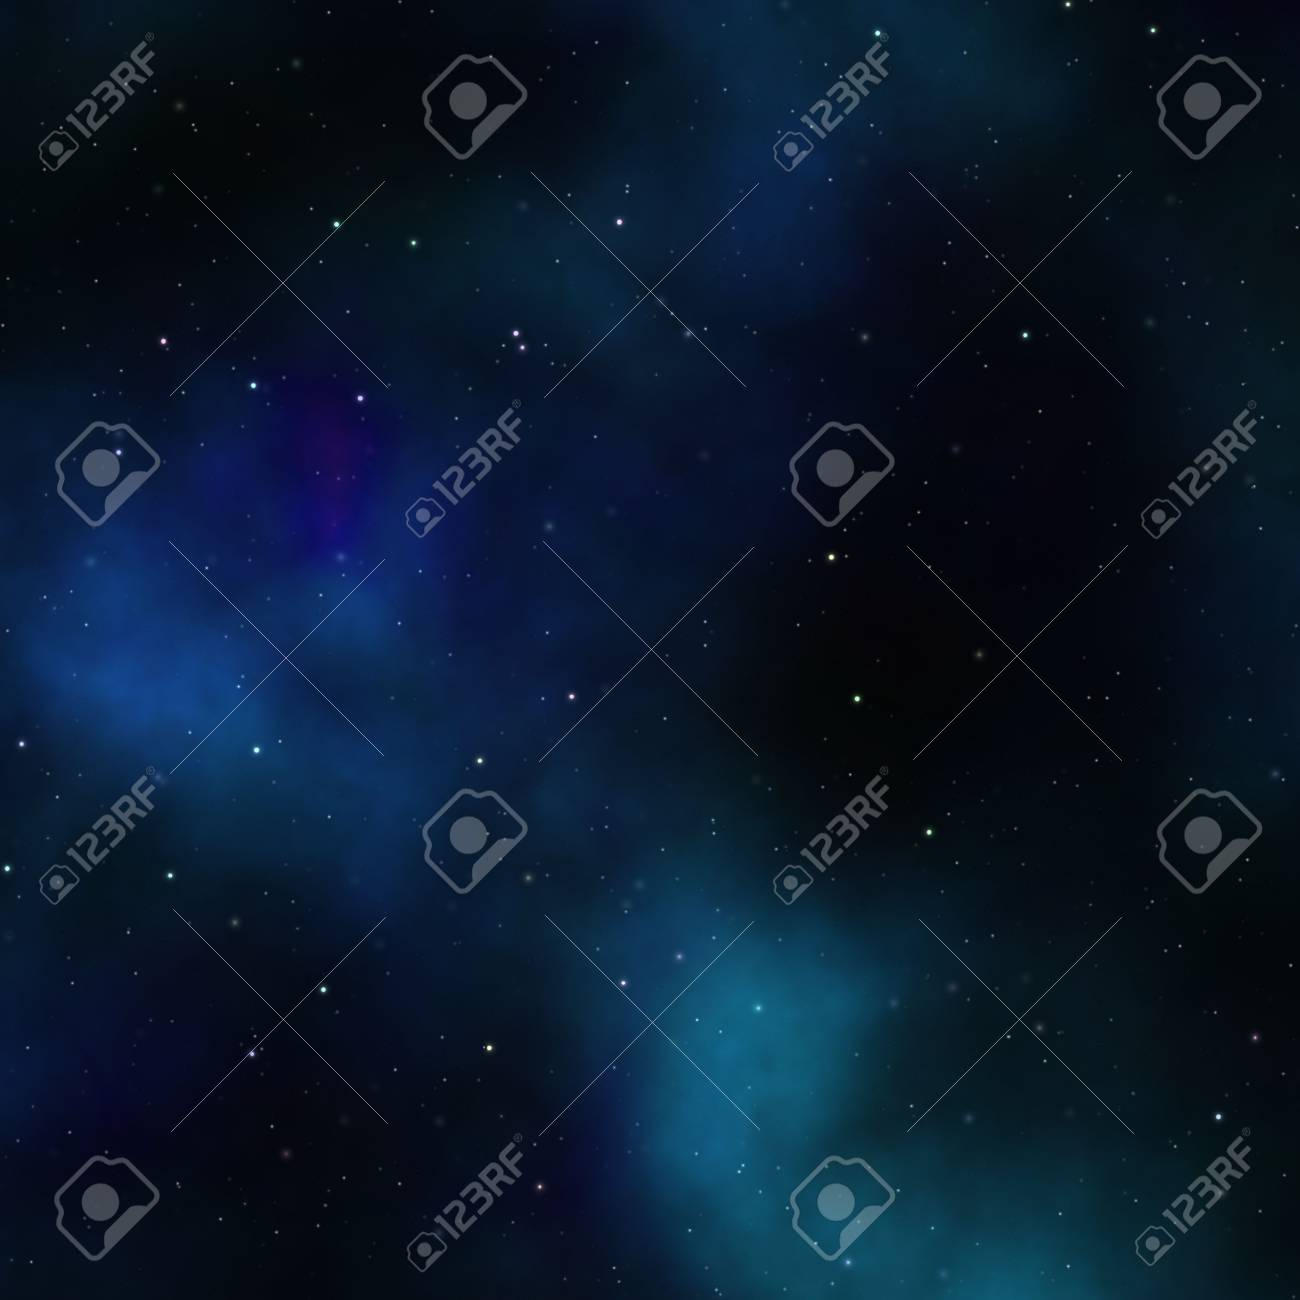 Space nebula starfield abstract illustration of outerspace starry sky Stock Illustration - 3364138